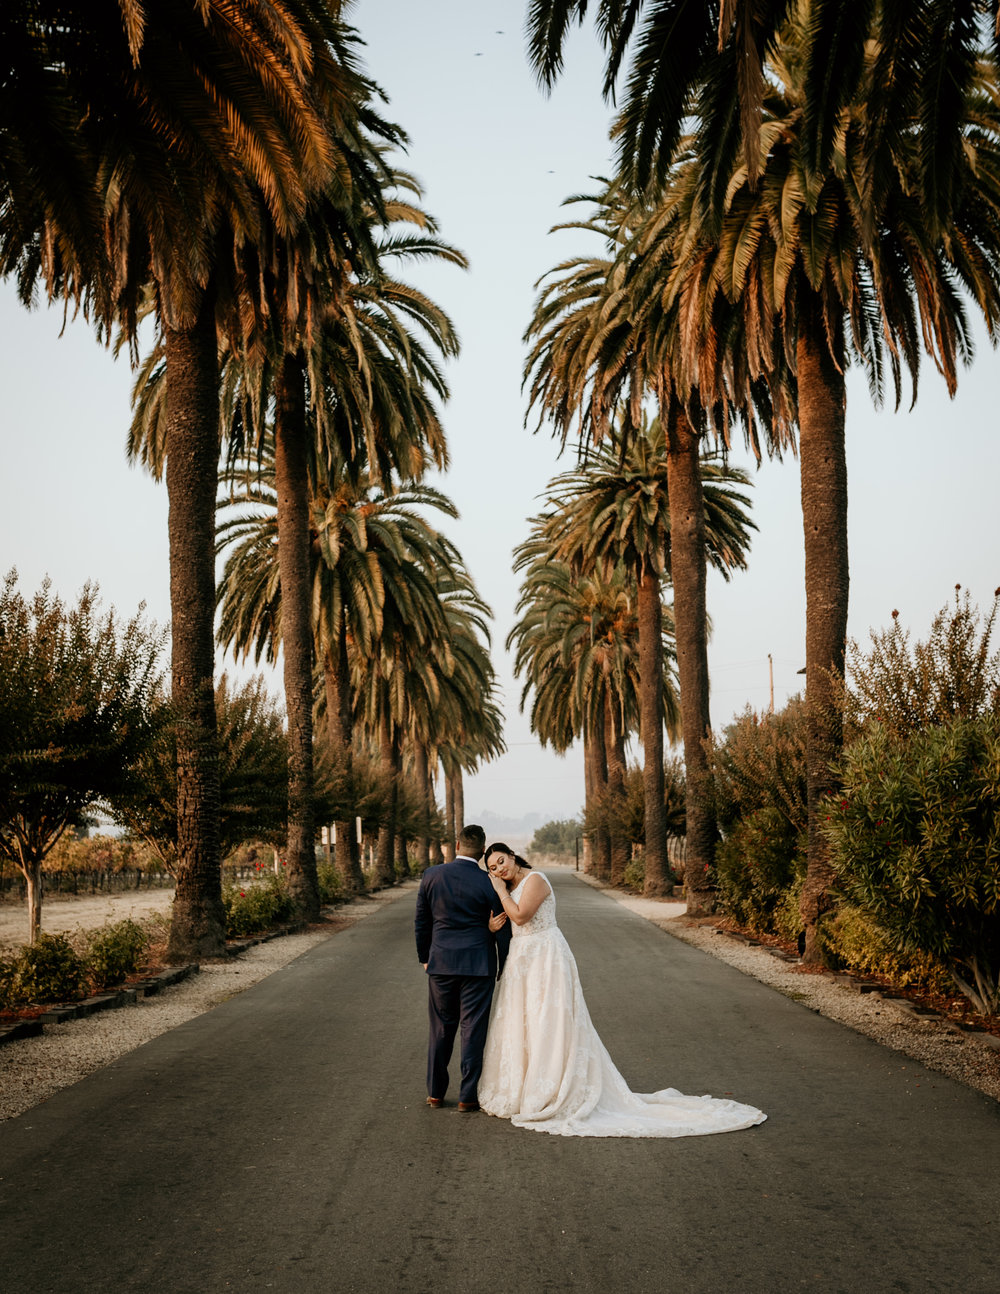 Bride and Groom at Palm Event Center Livermore